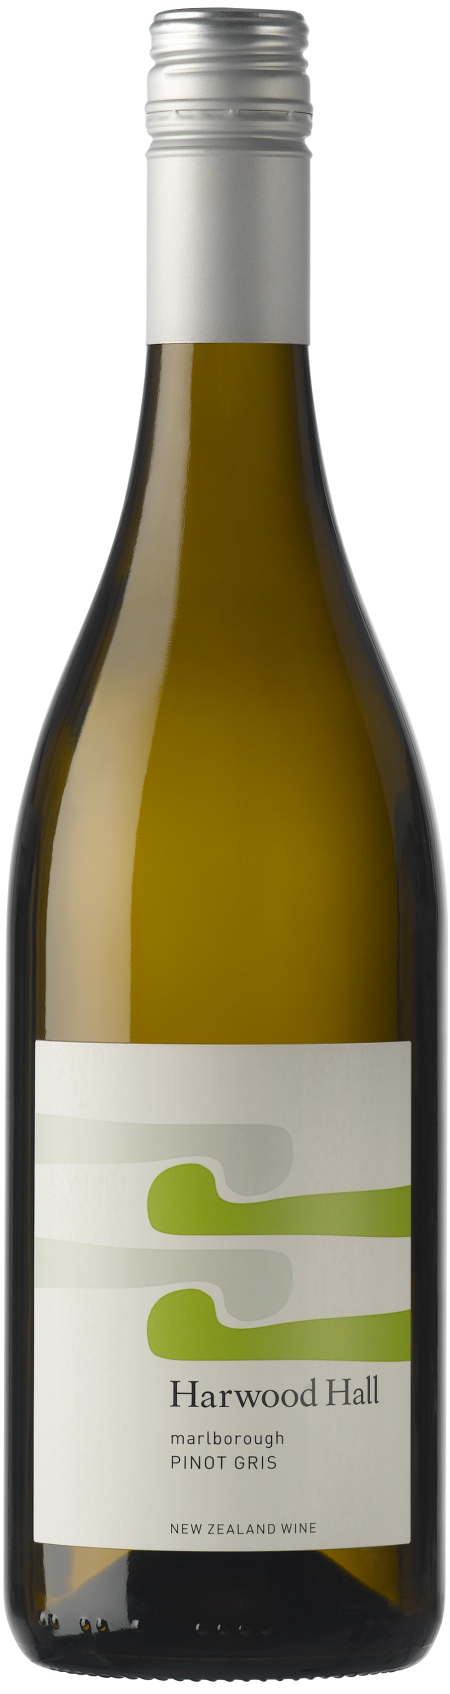 Harwood Hall Pinot Gris 2018-0